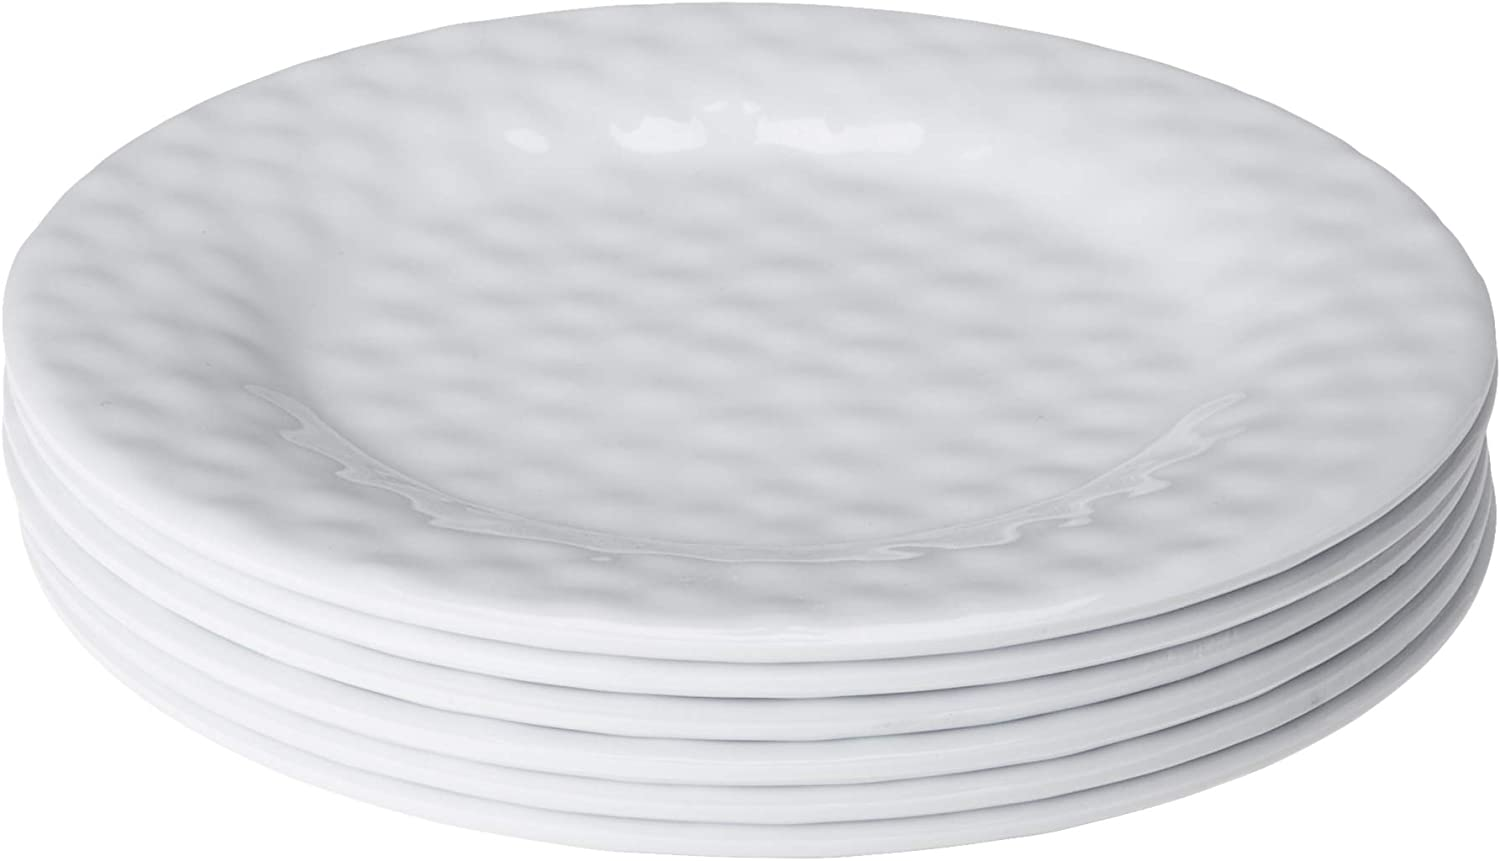 Bayview Essentials- Unbreakable Melamine Daily Plates- Set of 6 (Salad Plate, White)